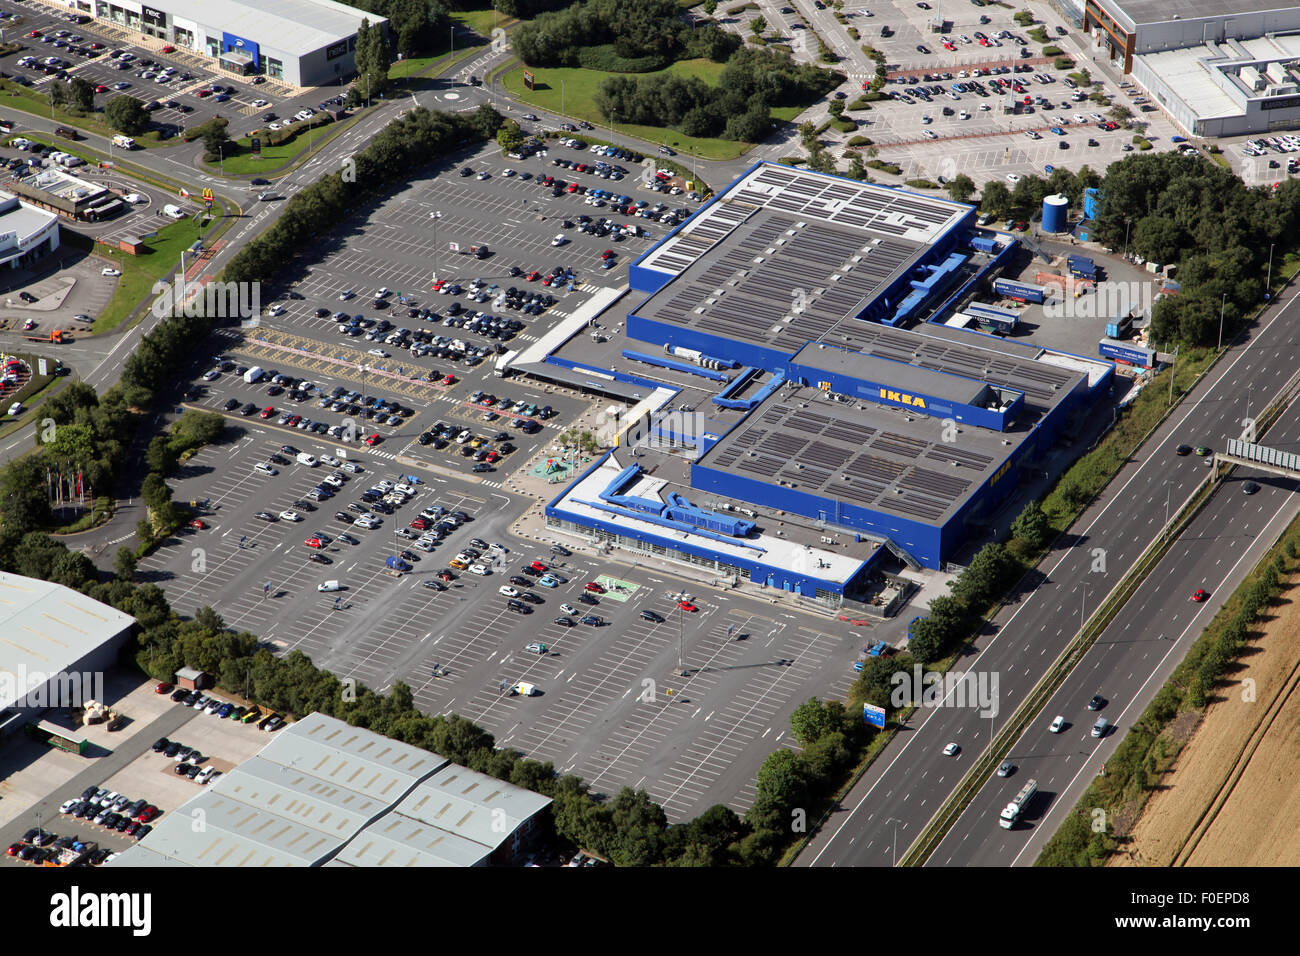 aerial view of Ikea store at Westbook Warrington Cheshire, UK - Stock Image